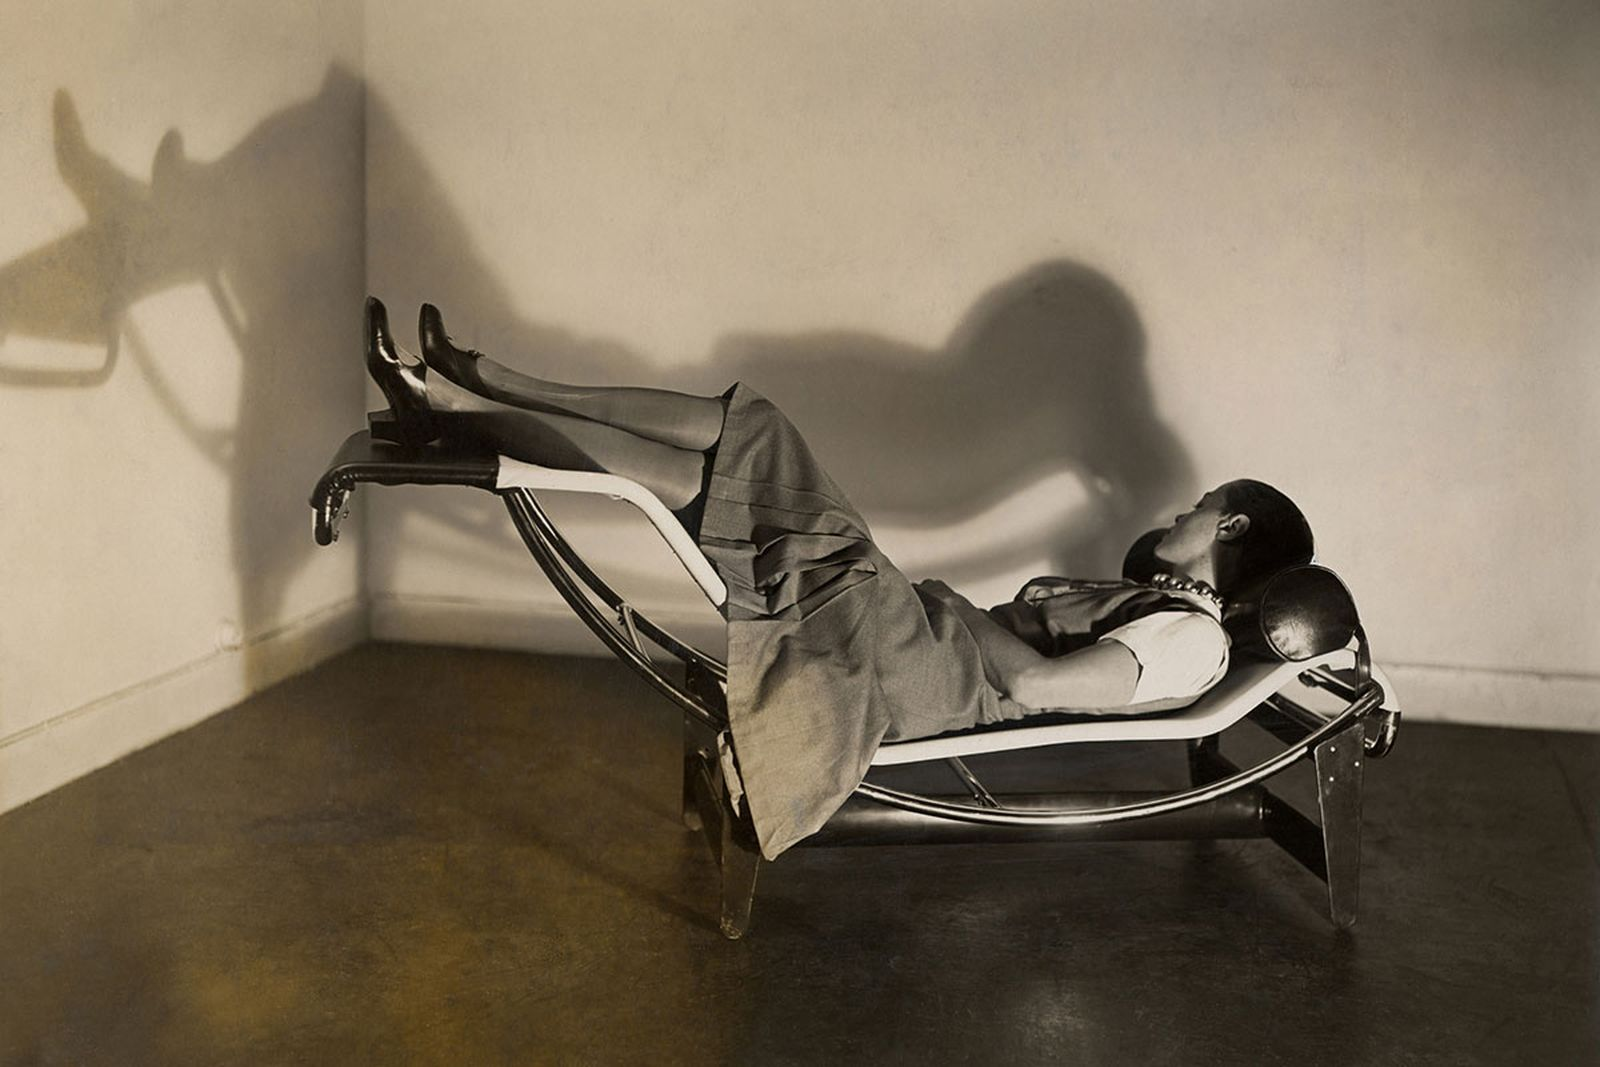 Charlotte perriand on a chaise longue